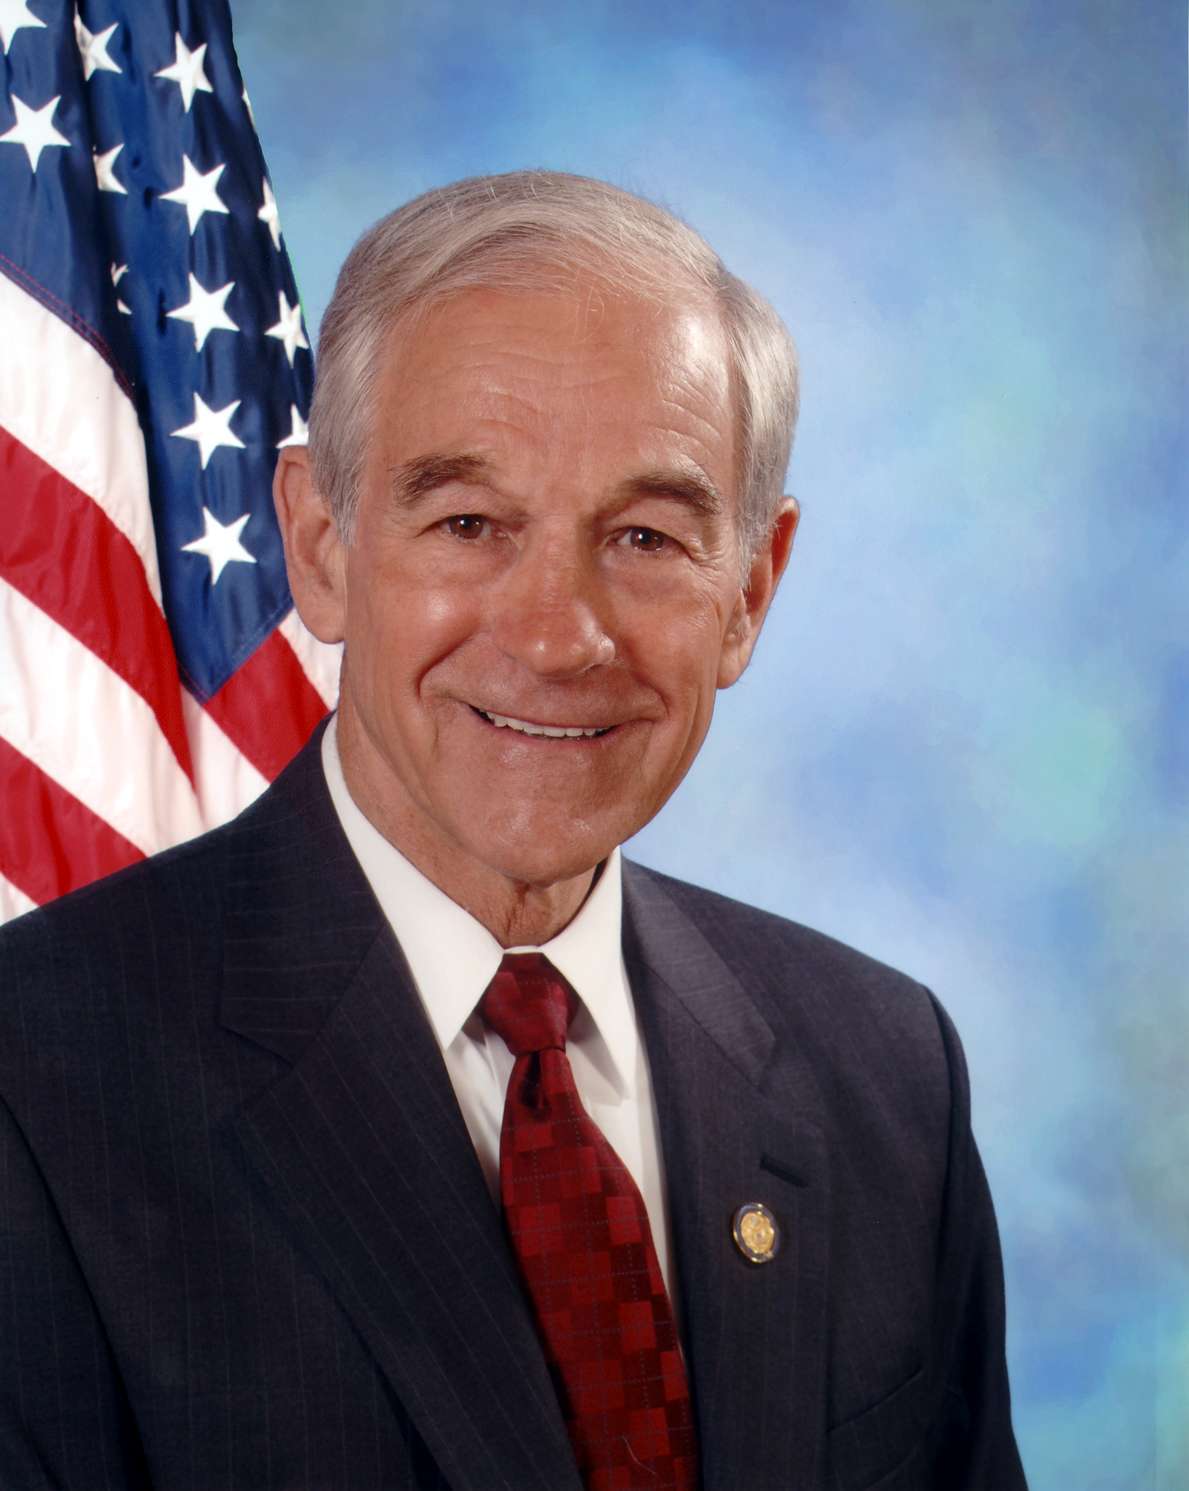 https://upload.wikimedia.org/wikipedia/commons/9/9d/Ron_Paul%2C_official_Congressional_photo_portrait%2C_2007.jpg